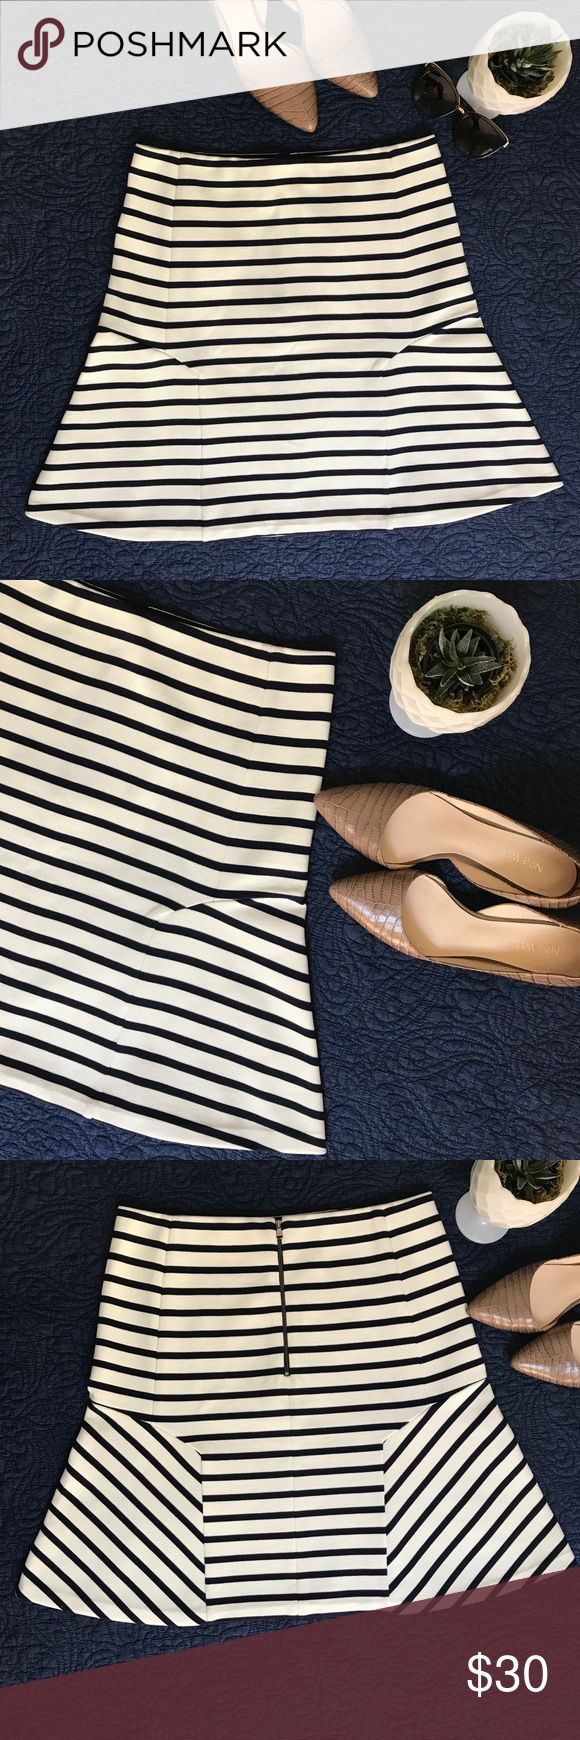 Ann Taylor Flared White & Navy Striped Skirt Ann Taylor Flared White & Navy Striped Skirt. Like new! Size 8 Fits true to size (fabric has some stretch). Very flattering on the hips! Perfect for any occasion! ⛵️ can be dressed up or down.                                                       *pet and smoke free home* Ann Taylor Skirts A-Line or Full